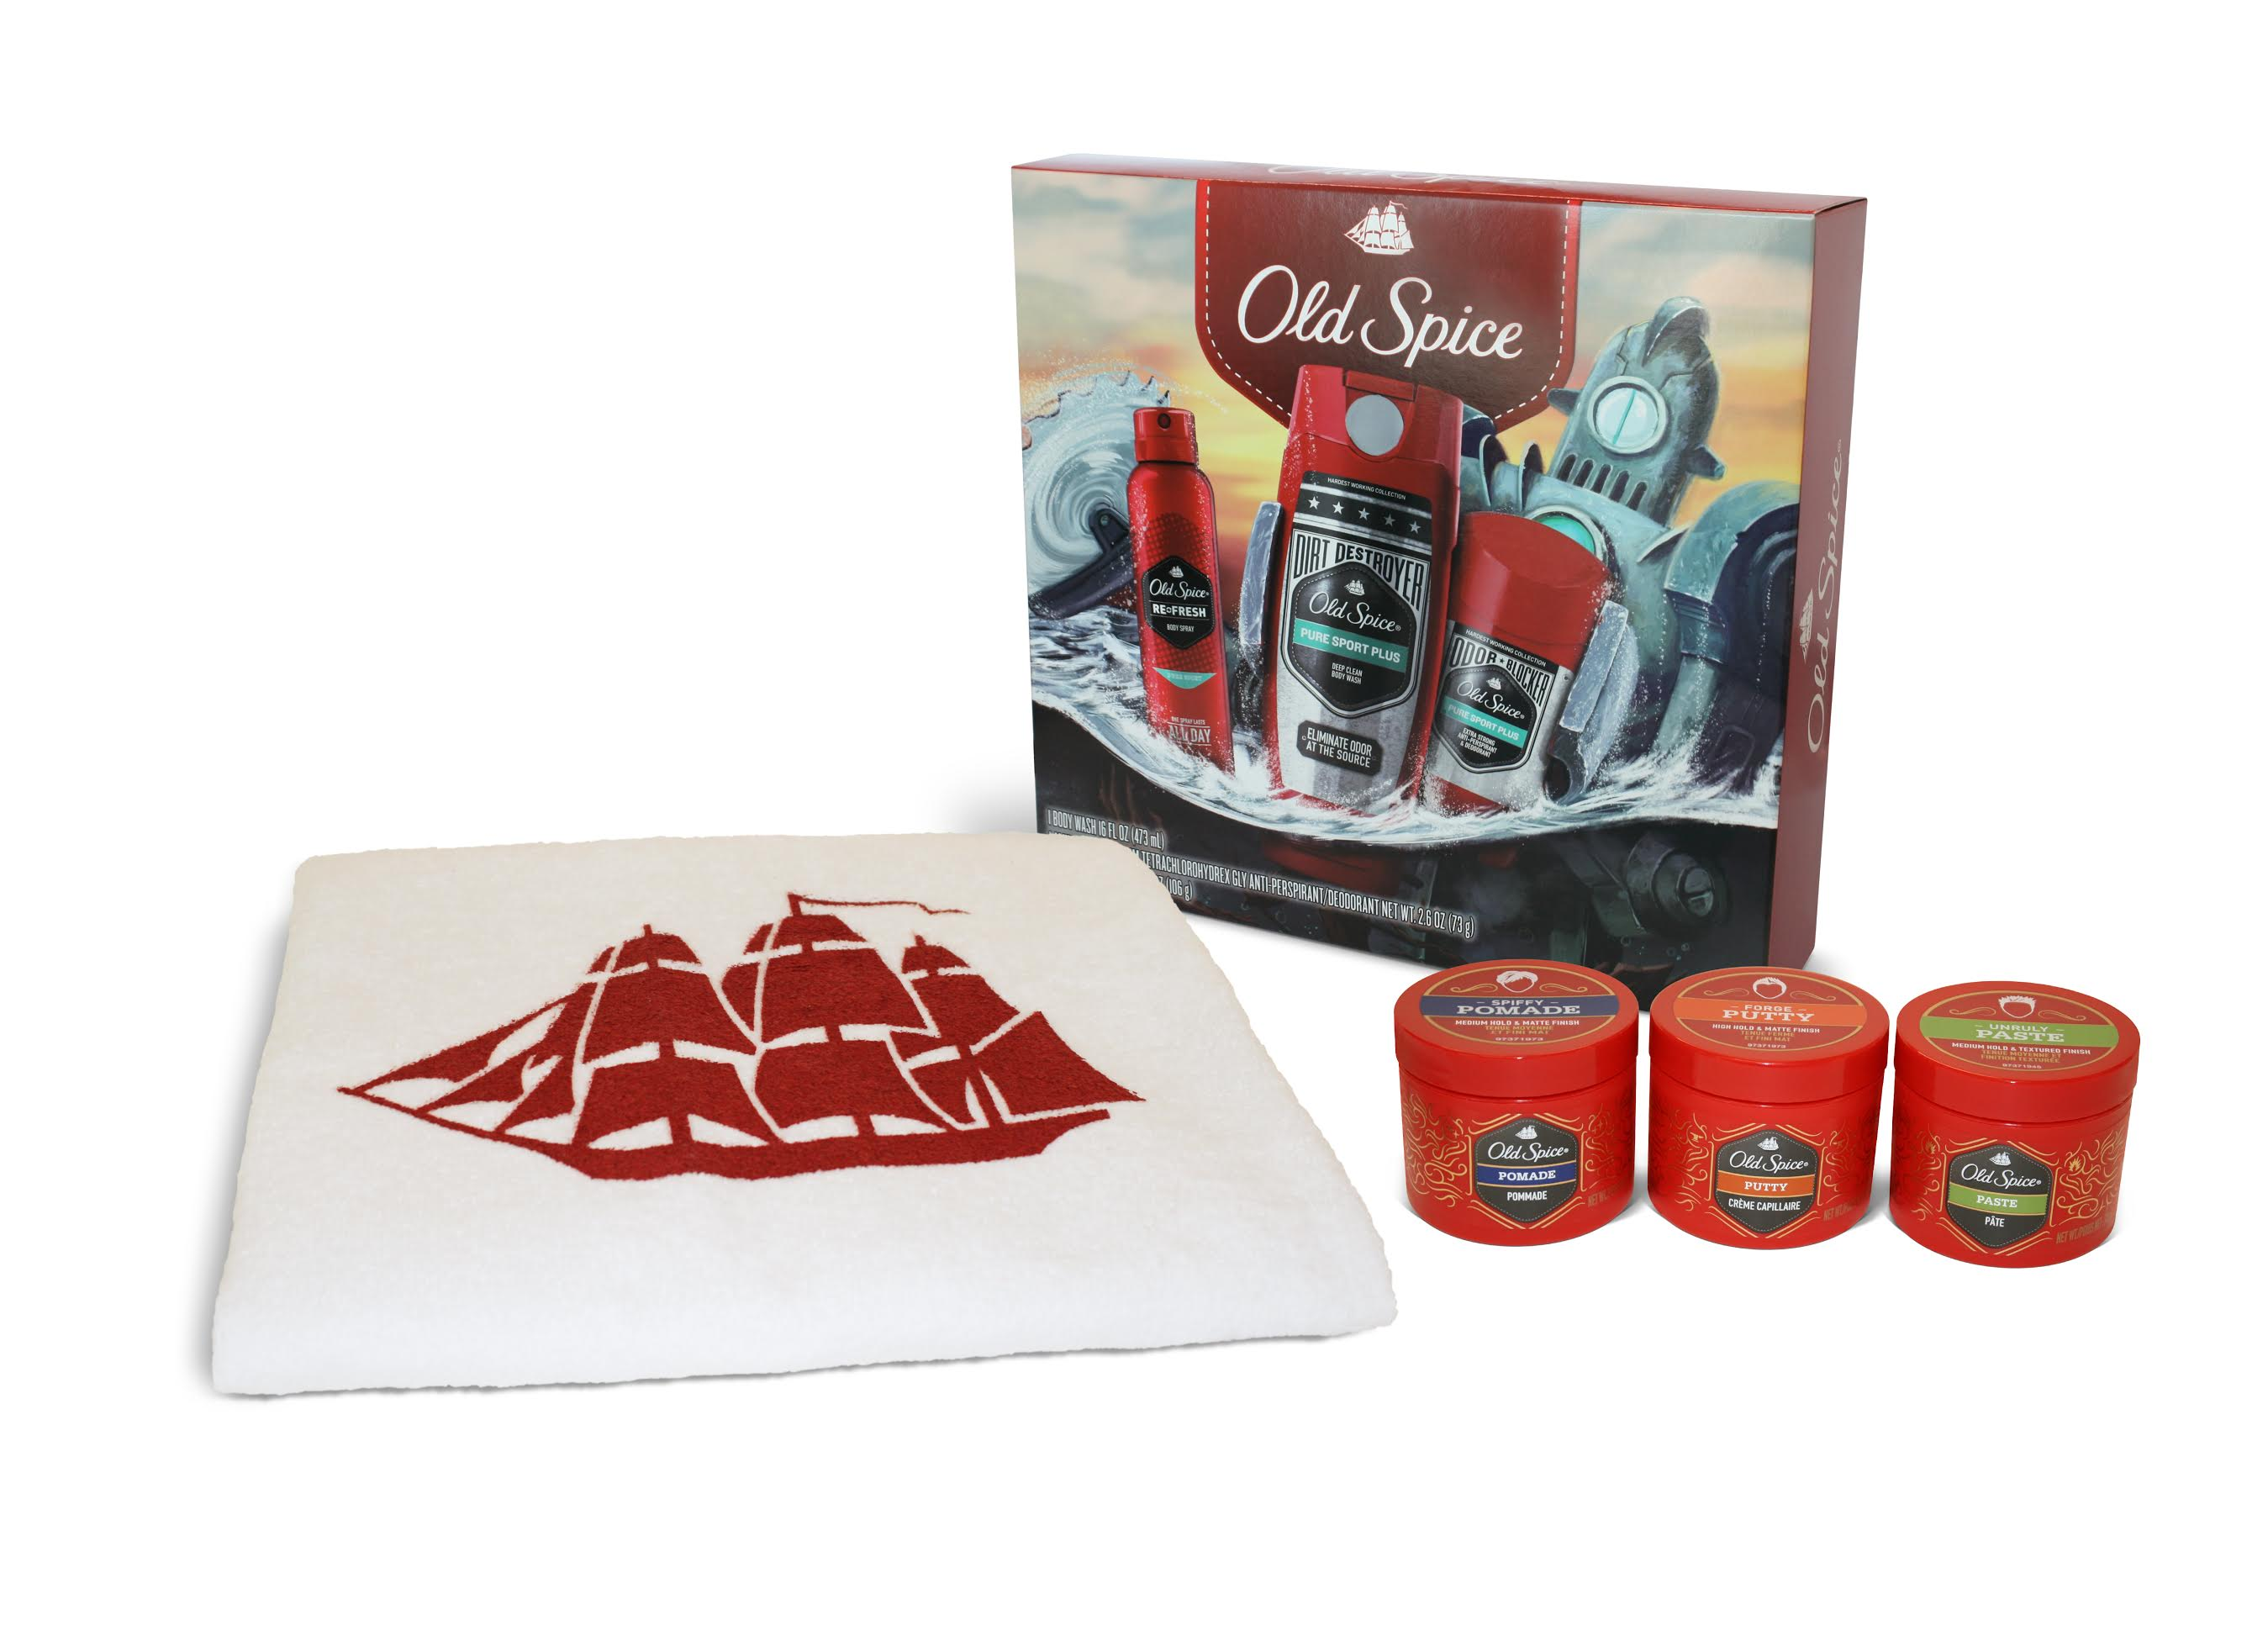 Old Spice Holiday Gift Set GIVEAWAY